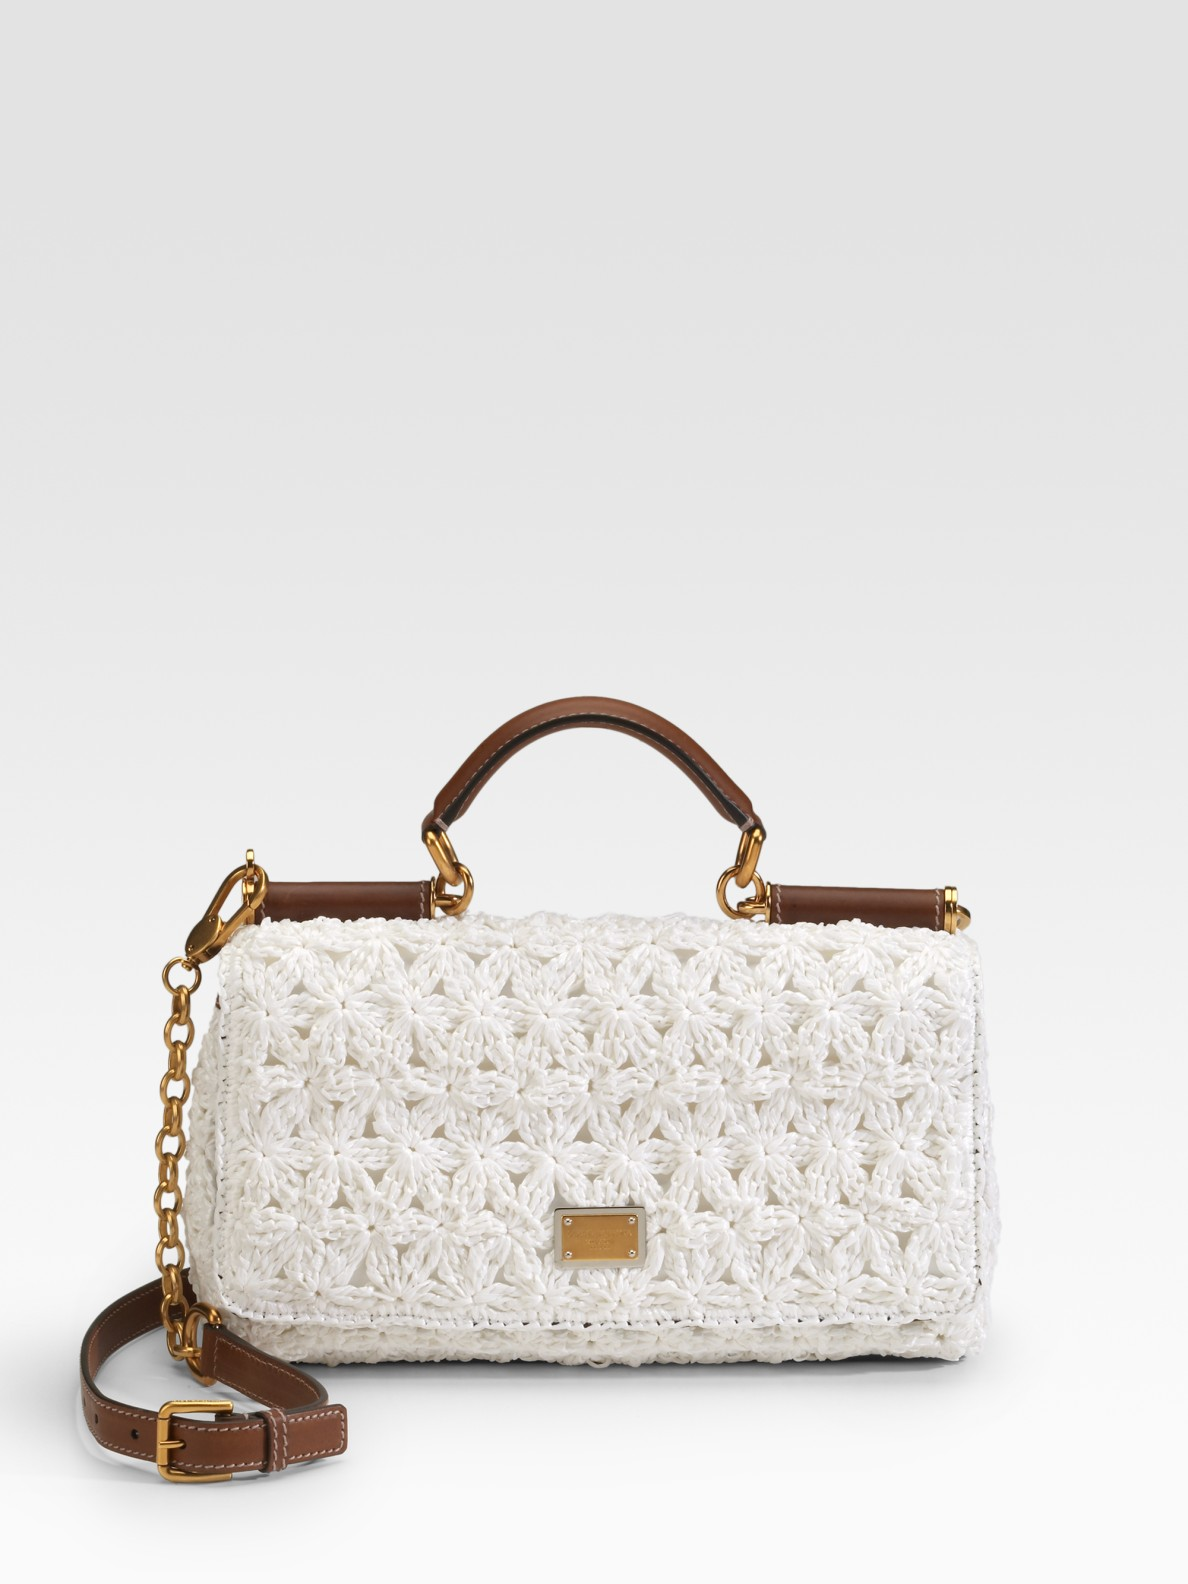 Lyst - Dolce   Gabbana Miss New Sicily Raffia Top Handle Bag in White 72a65613296e6